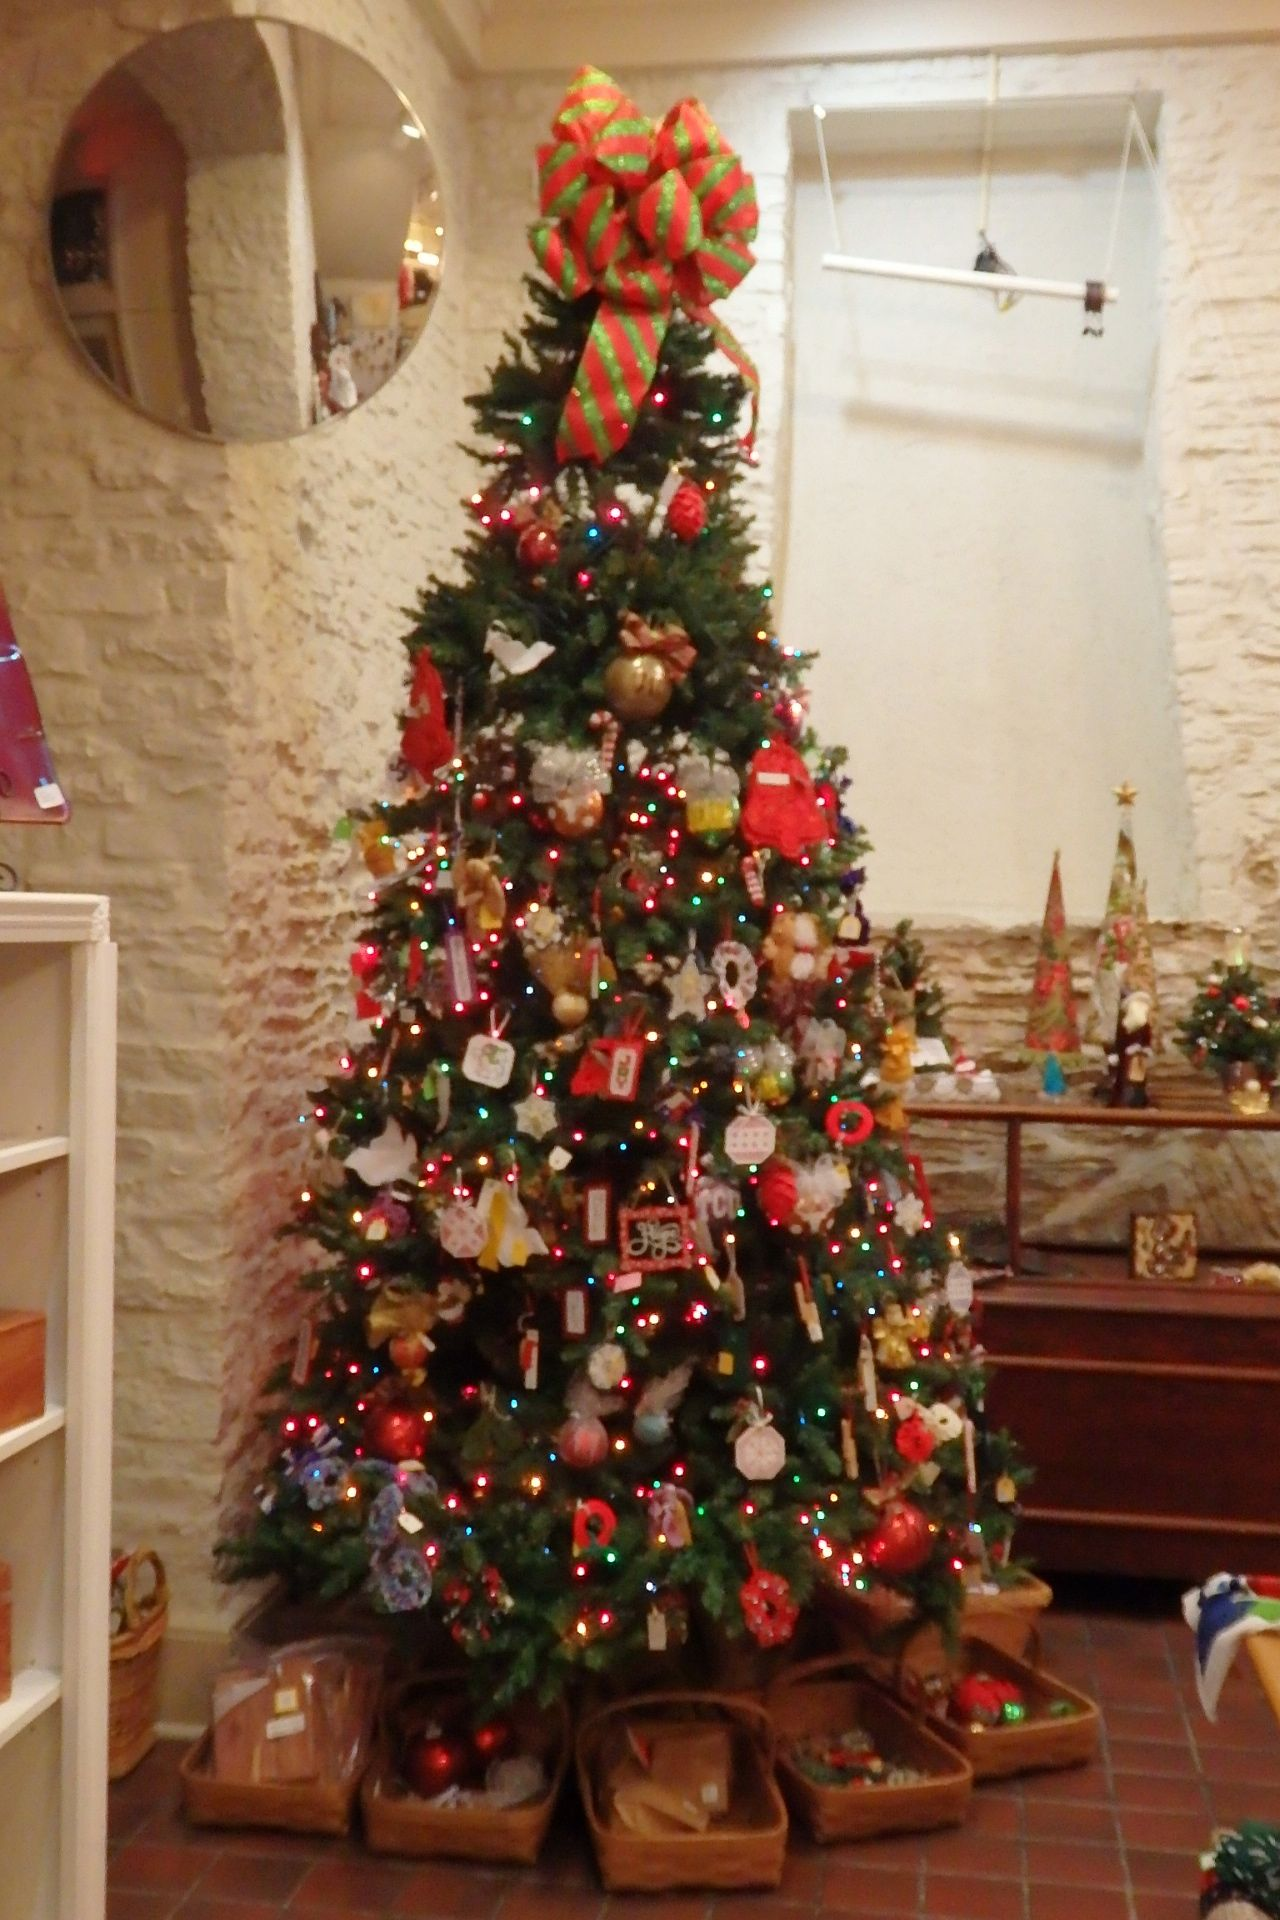 Beautiful Christmas tree at the Old Bakery. Christmas